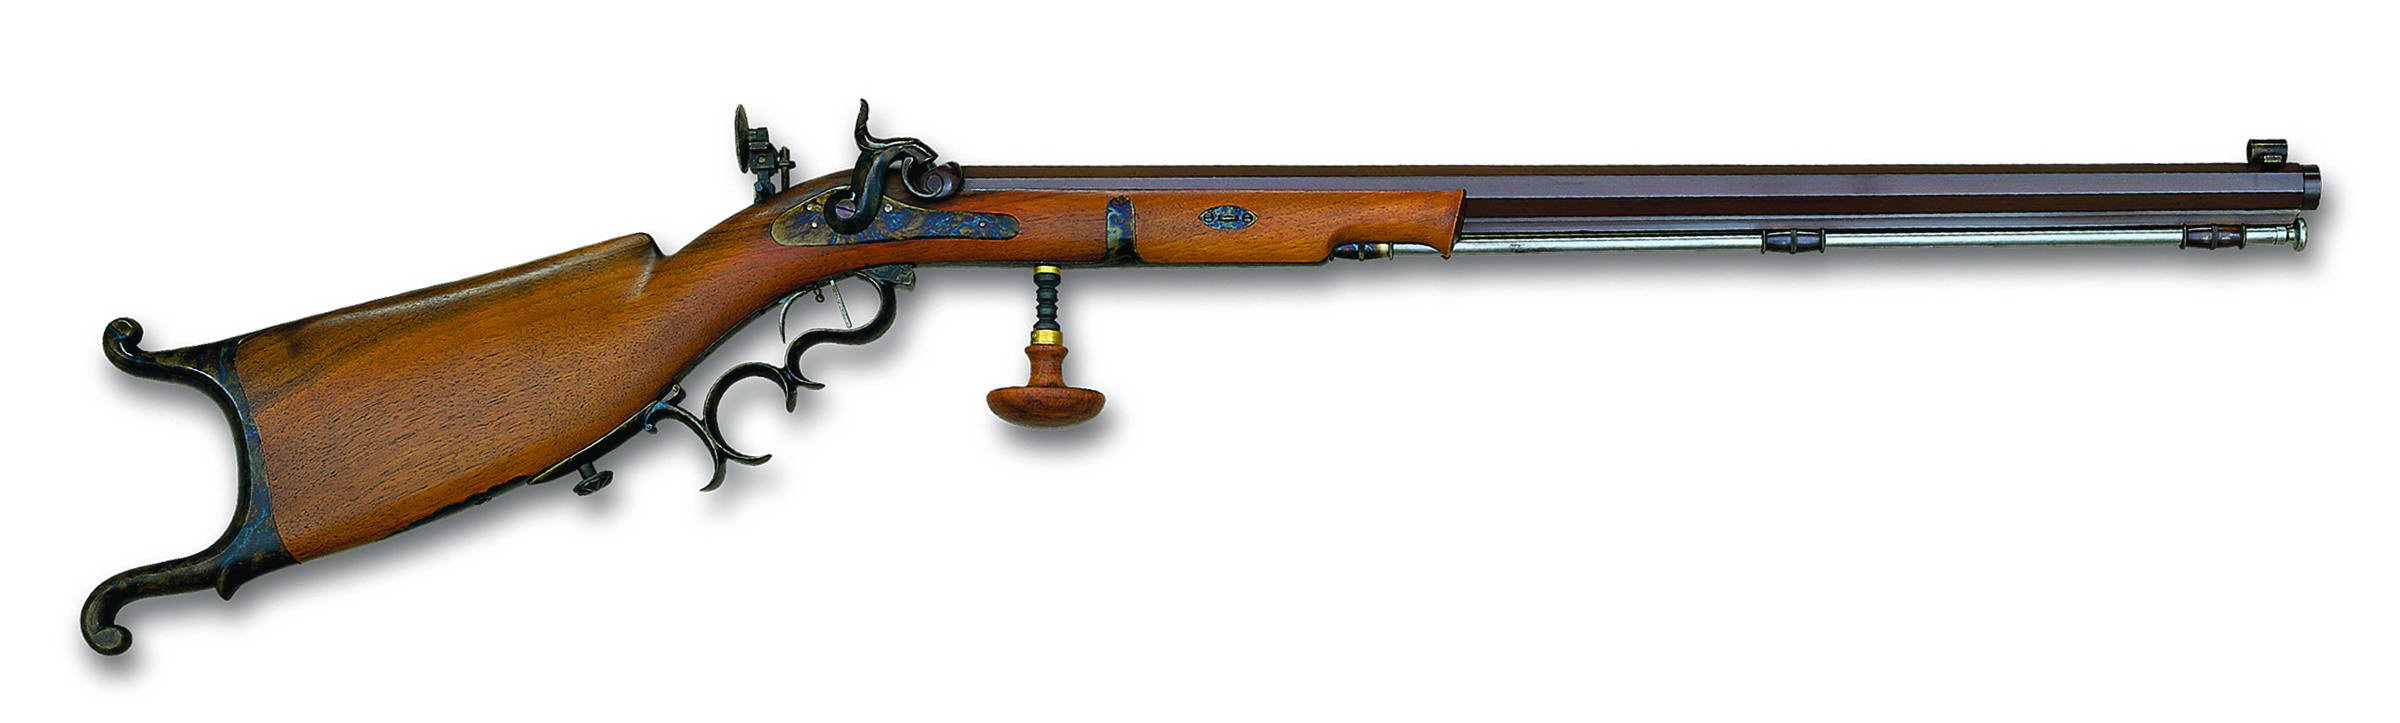 Cherry's Pedersoli rifle page (2)